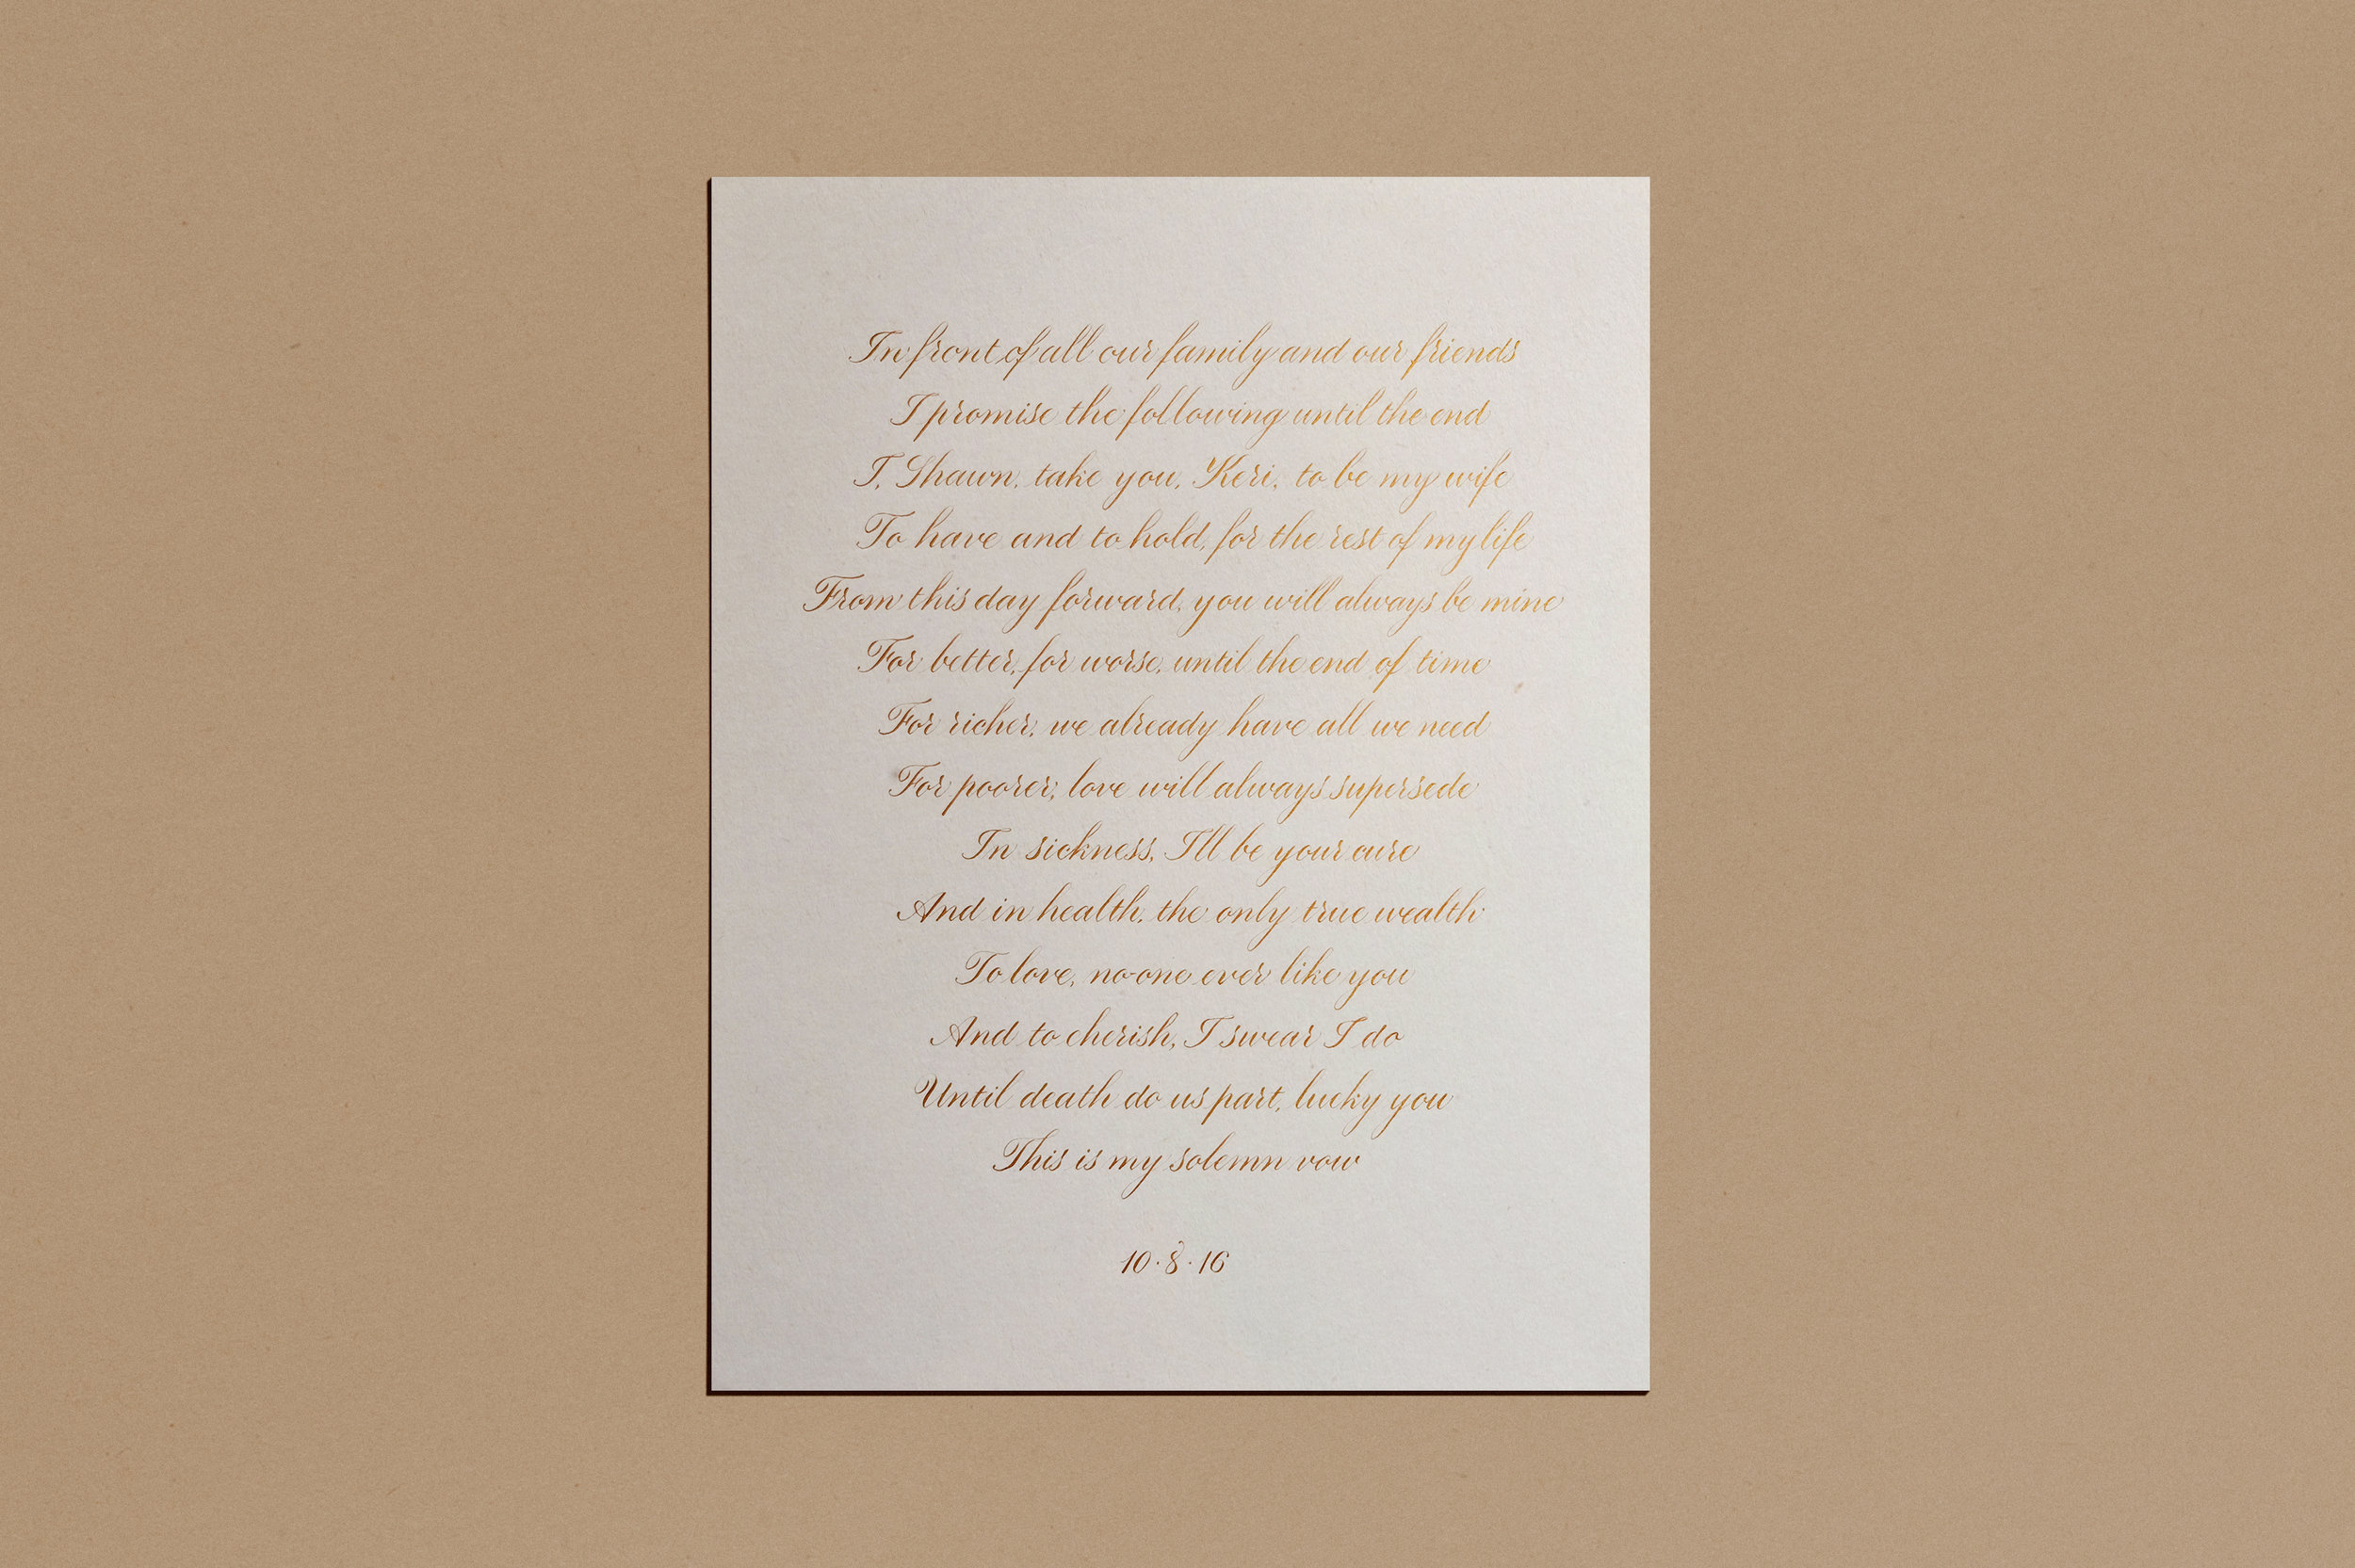 Wedding vows in calligraphy for a first wedding anniversary | www.chavelli.com